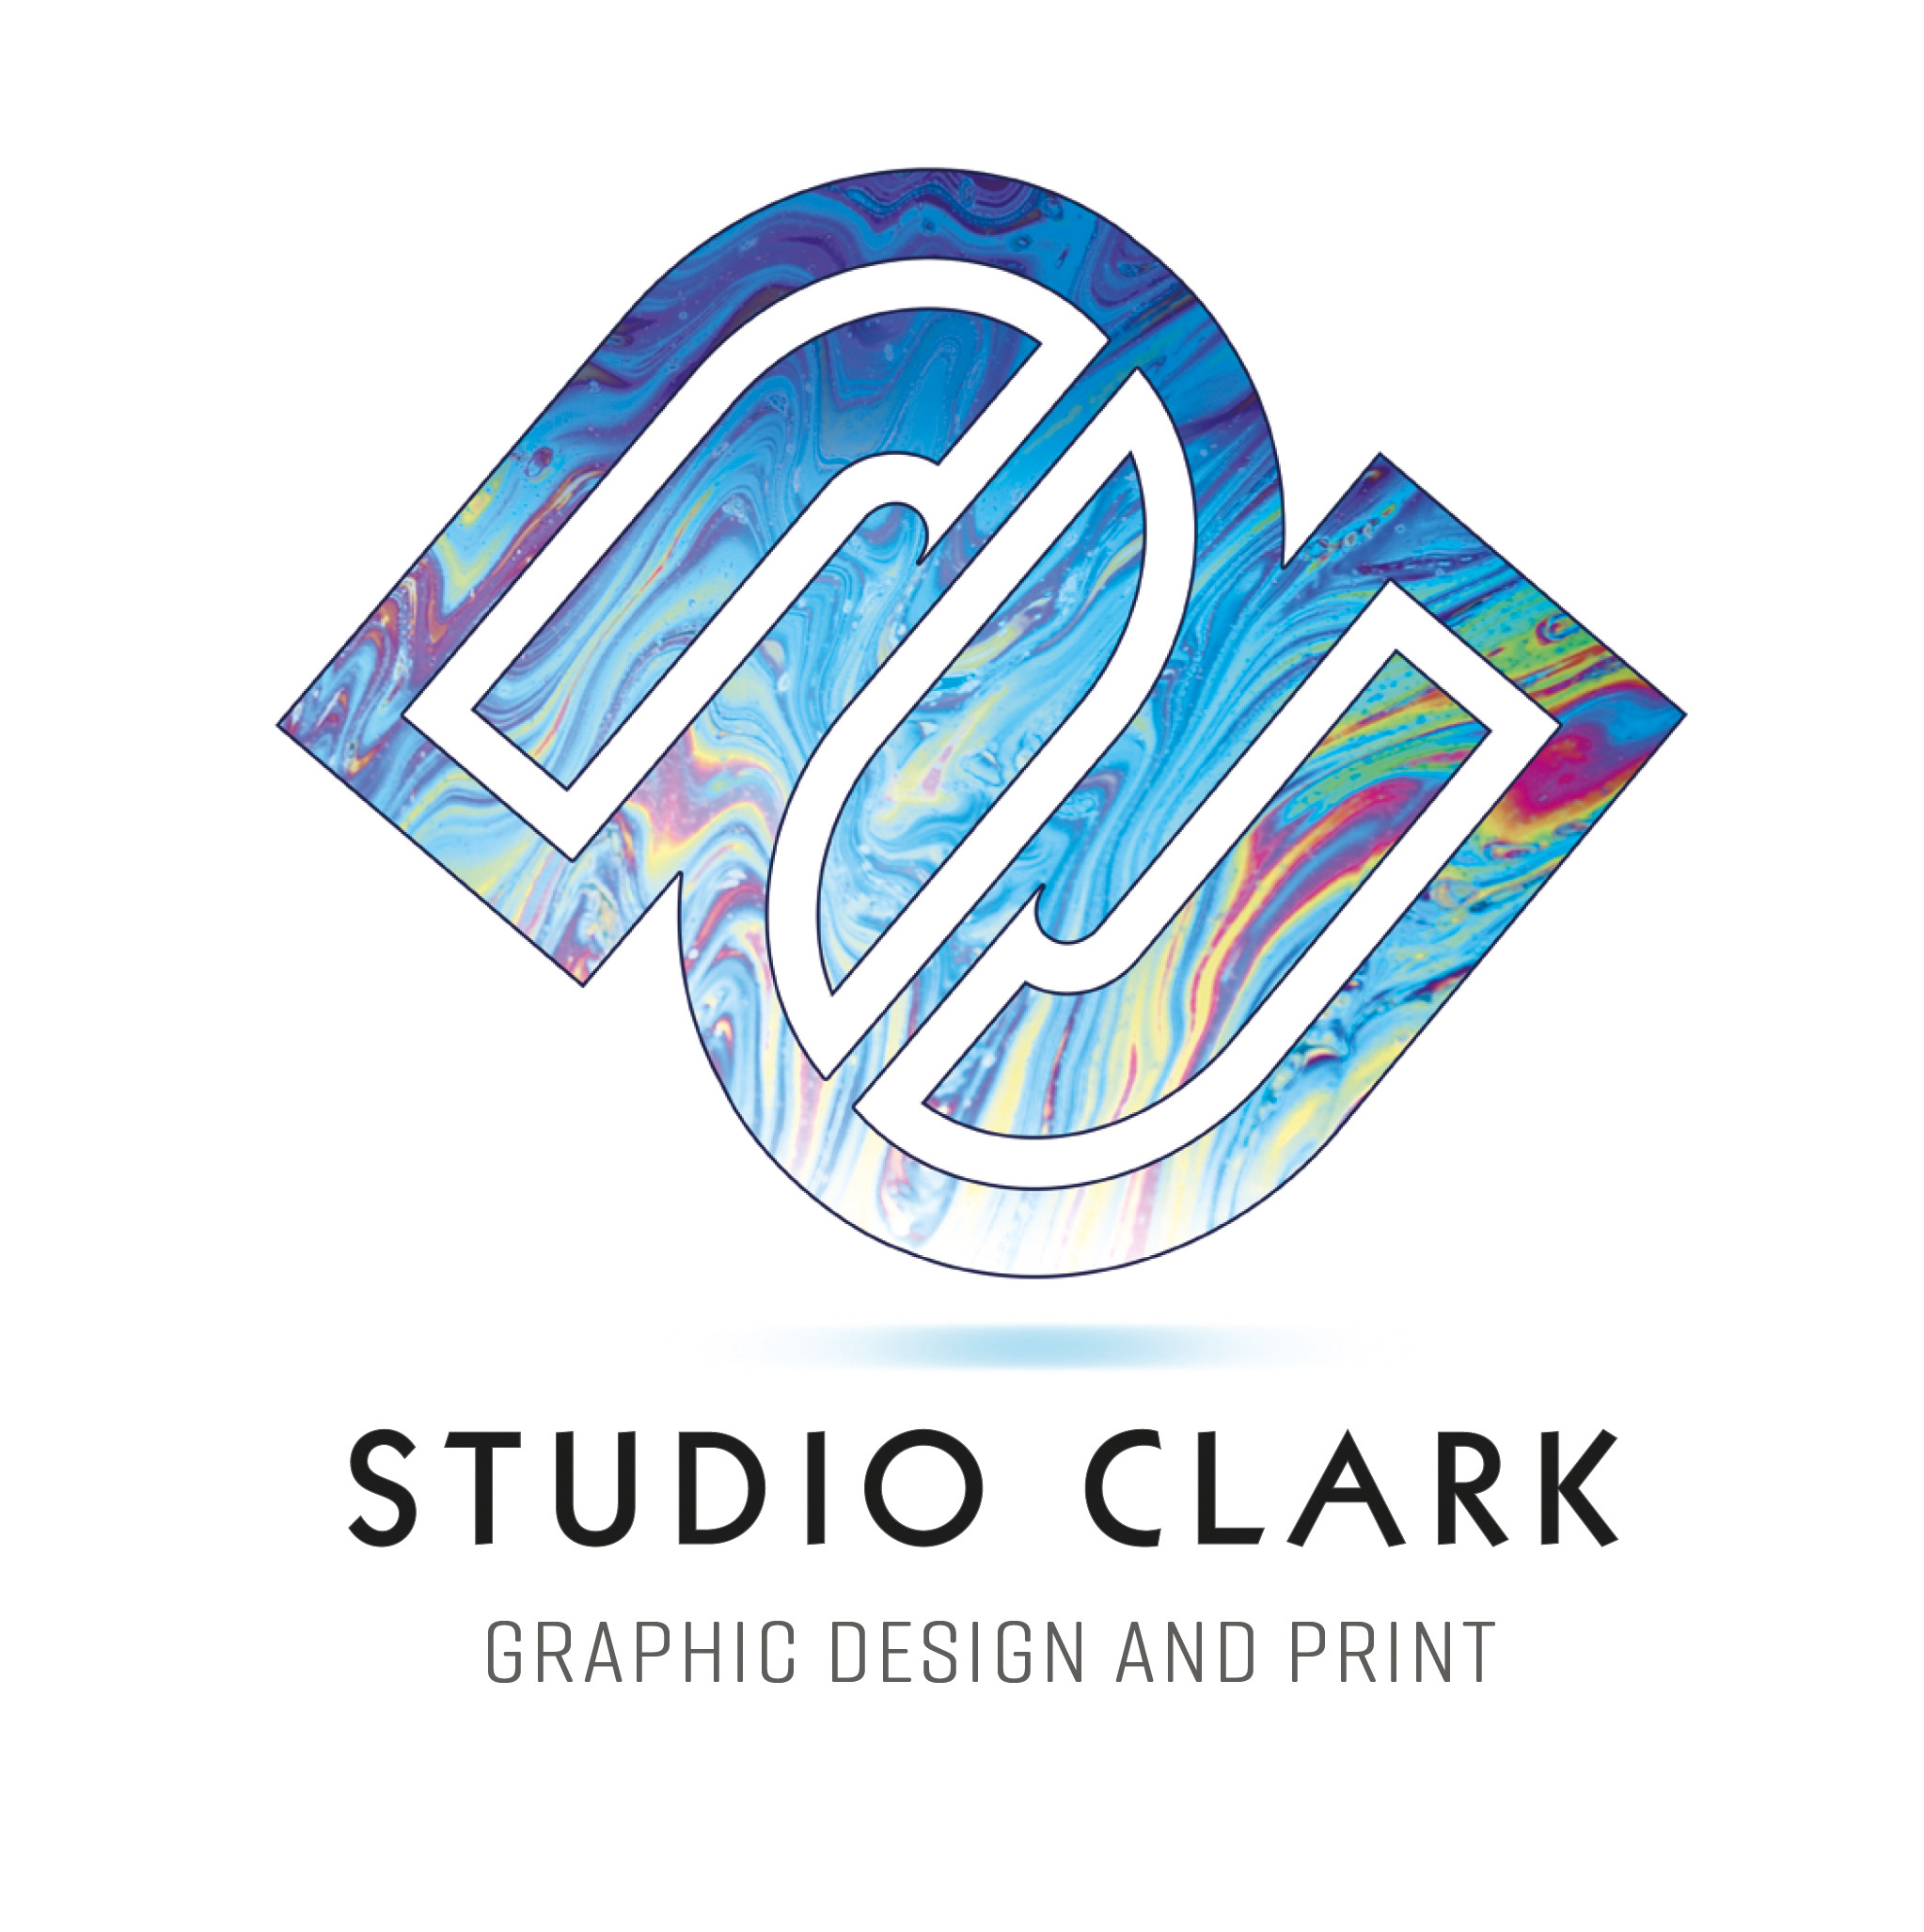 Studio Clark  Norfolk  Graphic Design  Photography  Illustration  Print